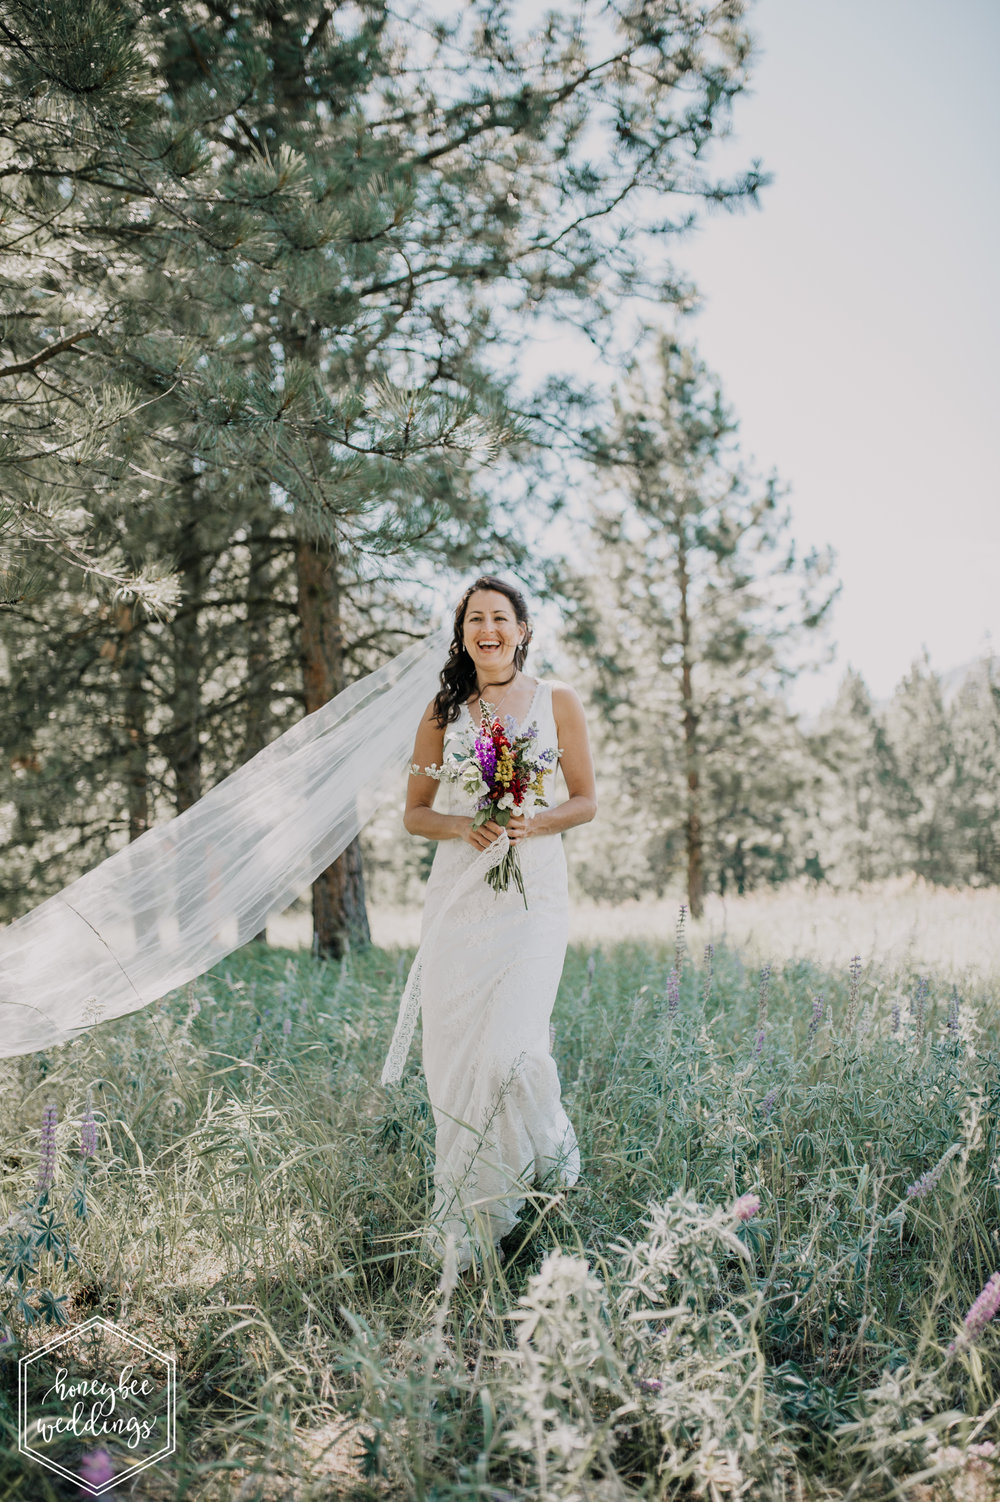 156 White Raven Wedding_Montana Wedding Photographer_Honeybee Weddings_ Meghan Maloney + Arza Hammond 2018-0108-2.jpg